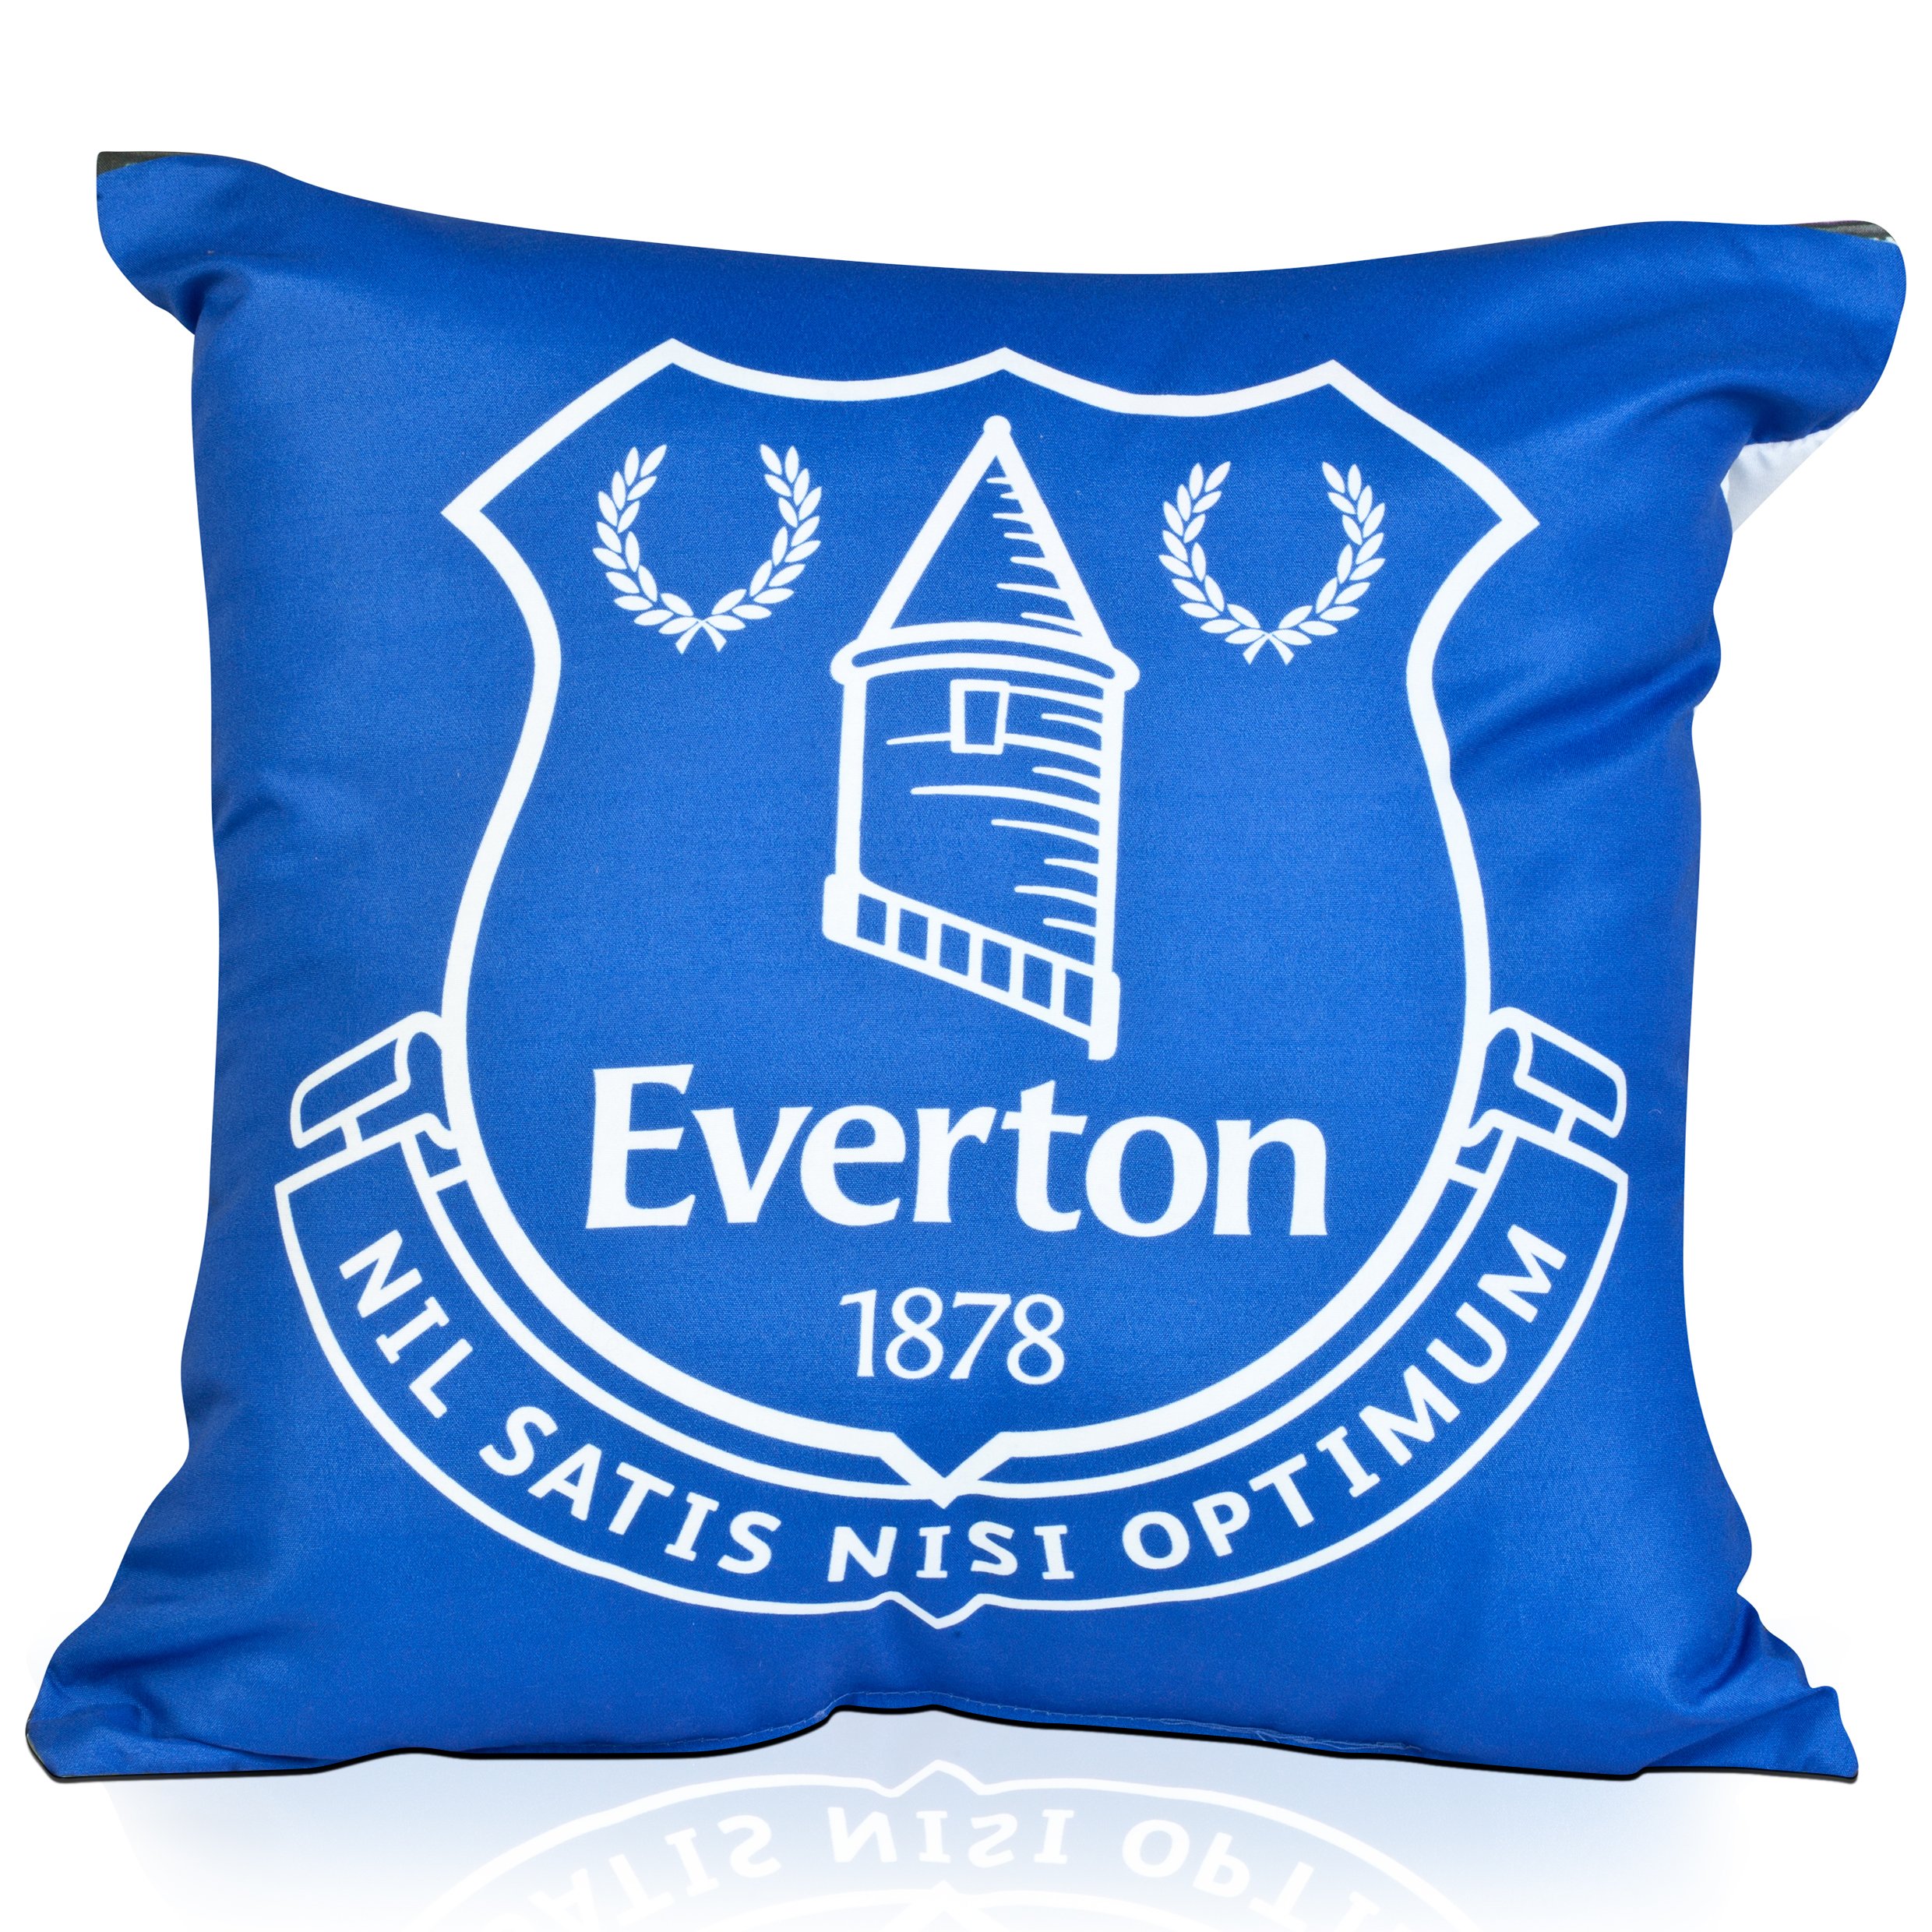 Everton Crest cushion